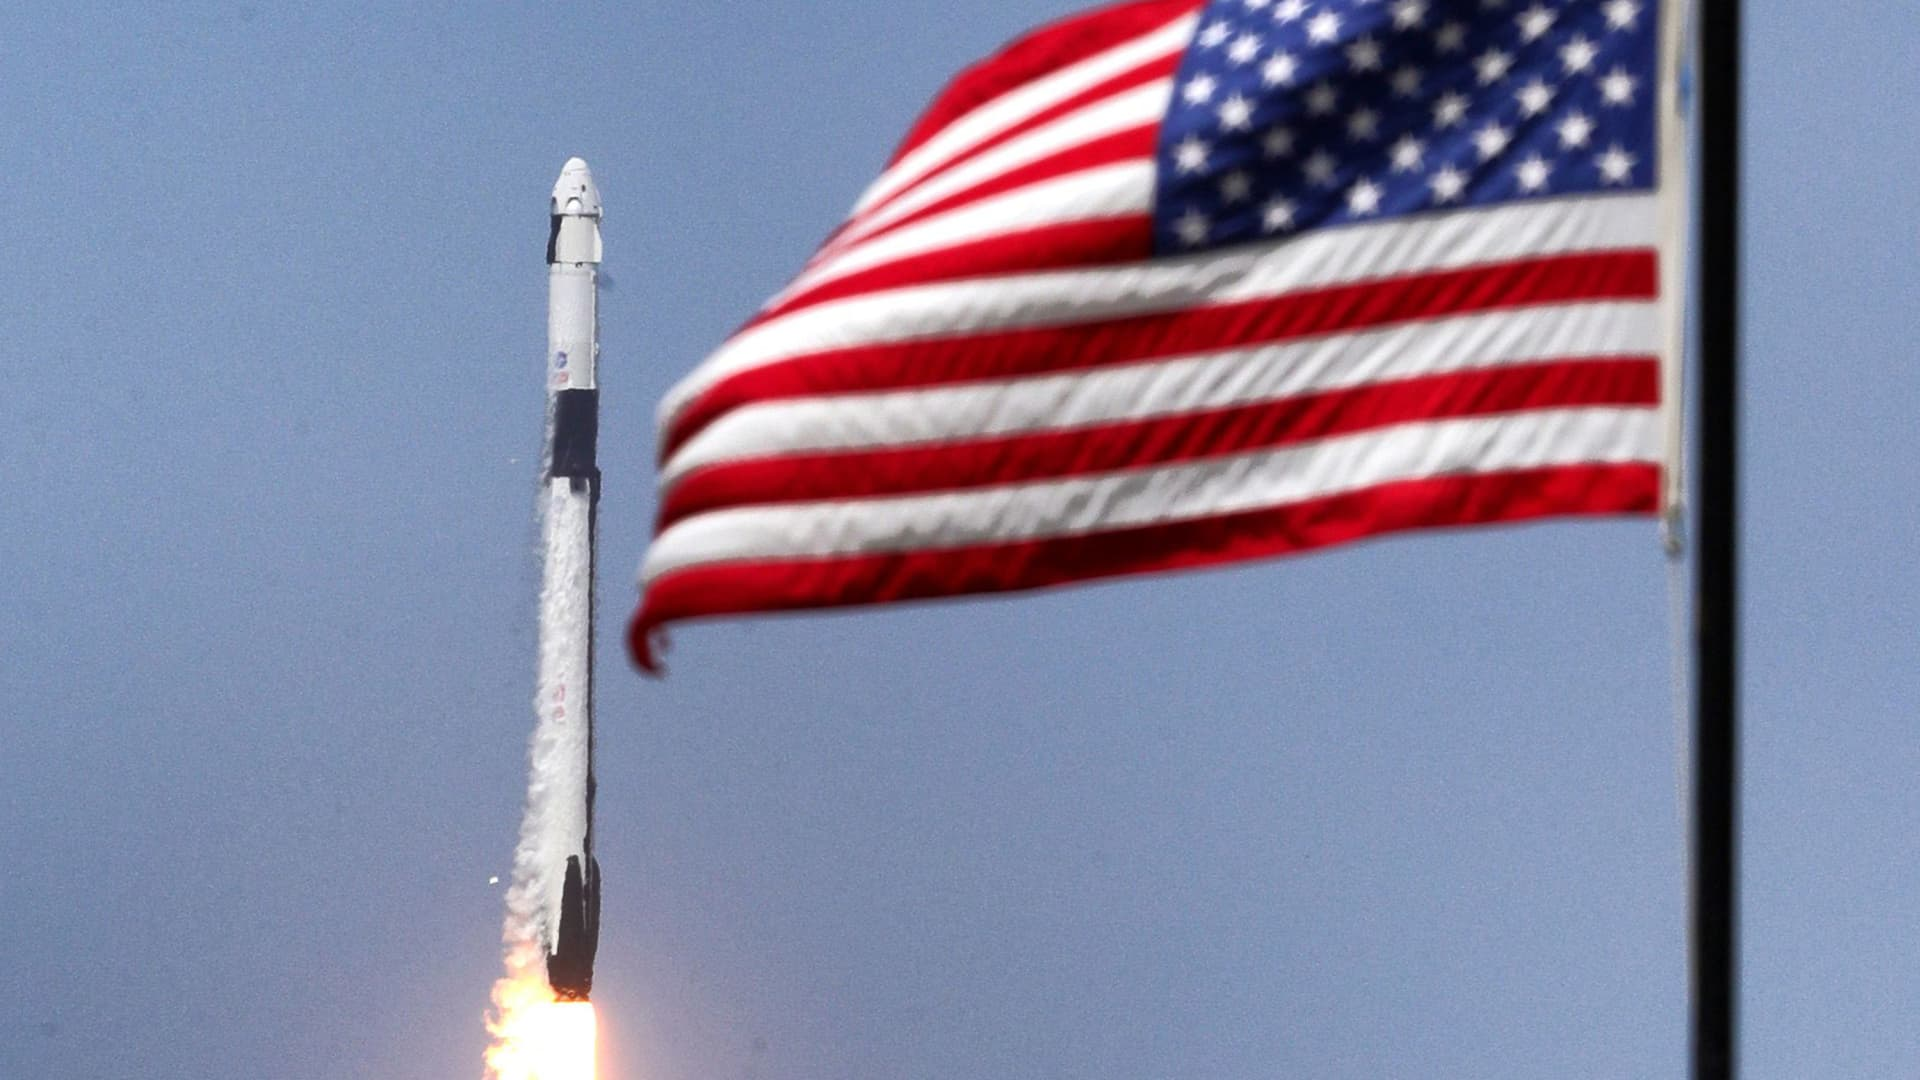 The SpaceX Falcon 9 rocket, carrying astronauts Doug Hurley and Bob Behnken in the Crew Dragon capsule, lifts off from Kennedy Space Center, Fla., on Saturday, May 30, 2020. The SpaceX Demo-2 mission is the first crewed launch of an orbital spaceflight from the U.S. in nearly a decade.